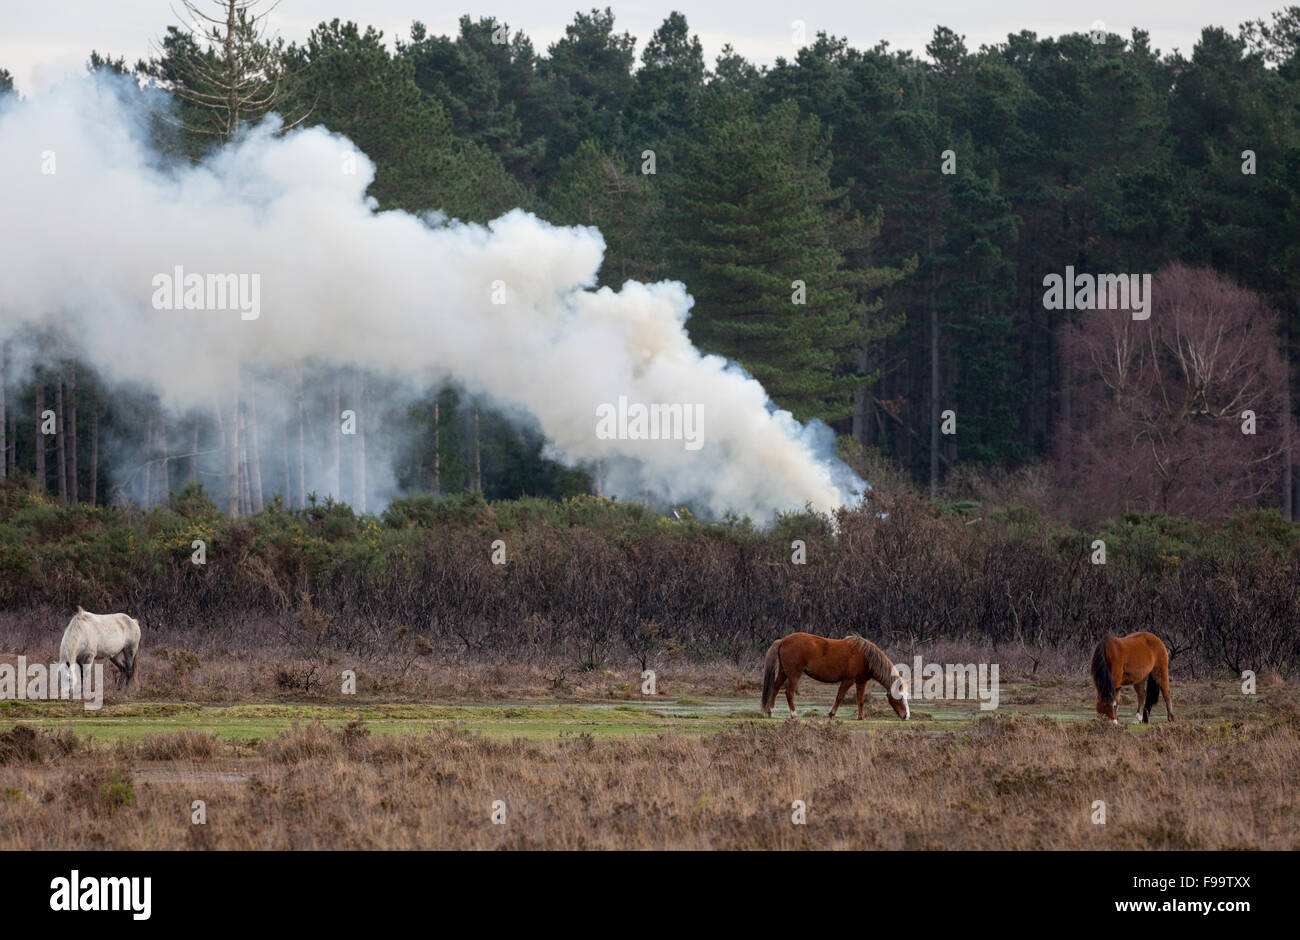 Smoke from Controlled Burning in The New Forest used to manage the forest - Stock Image